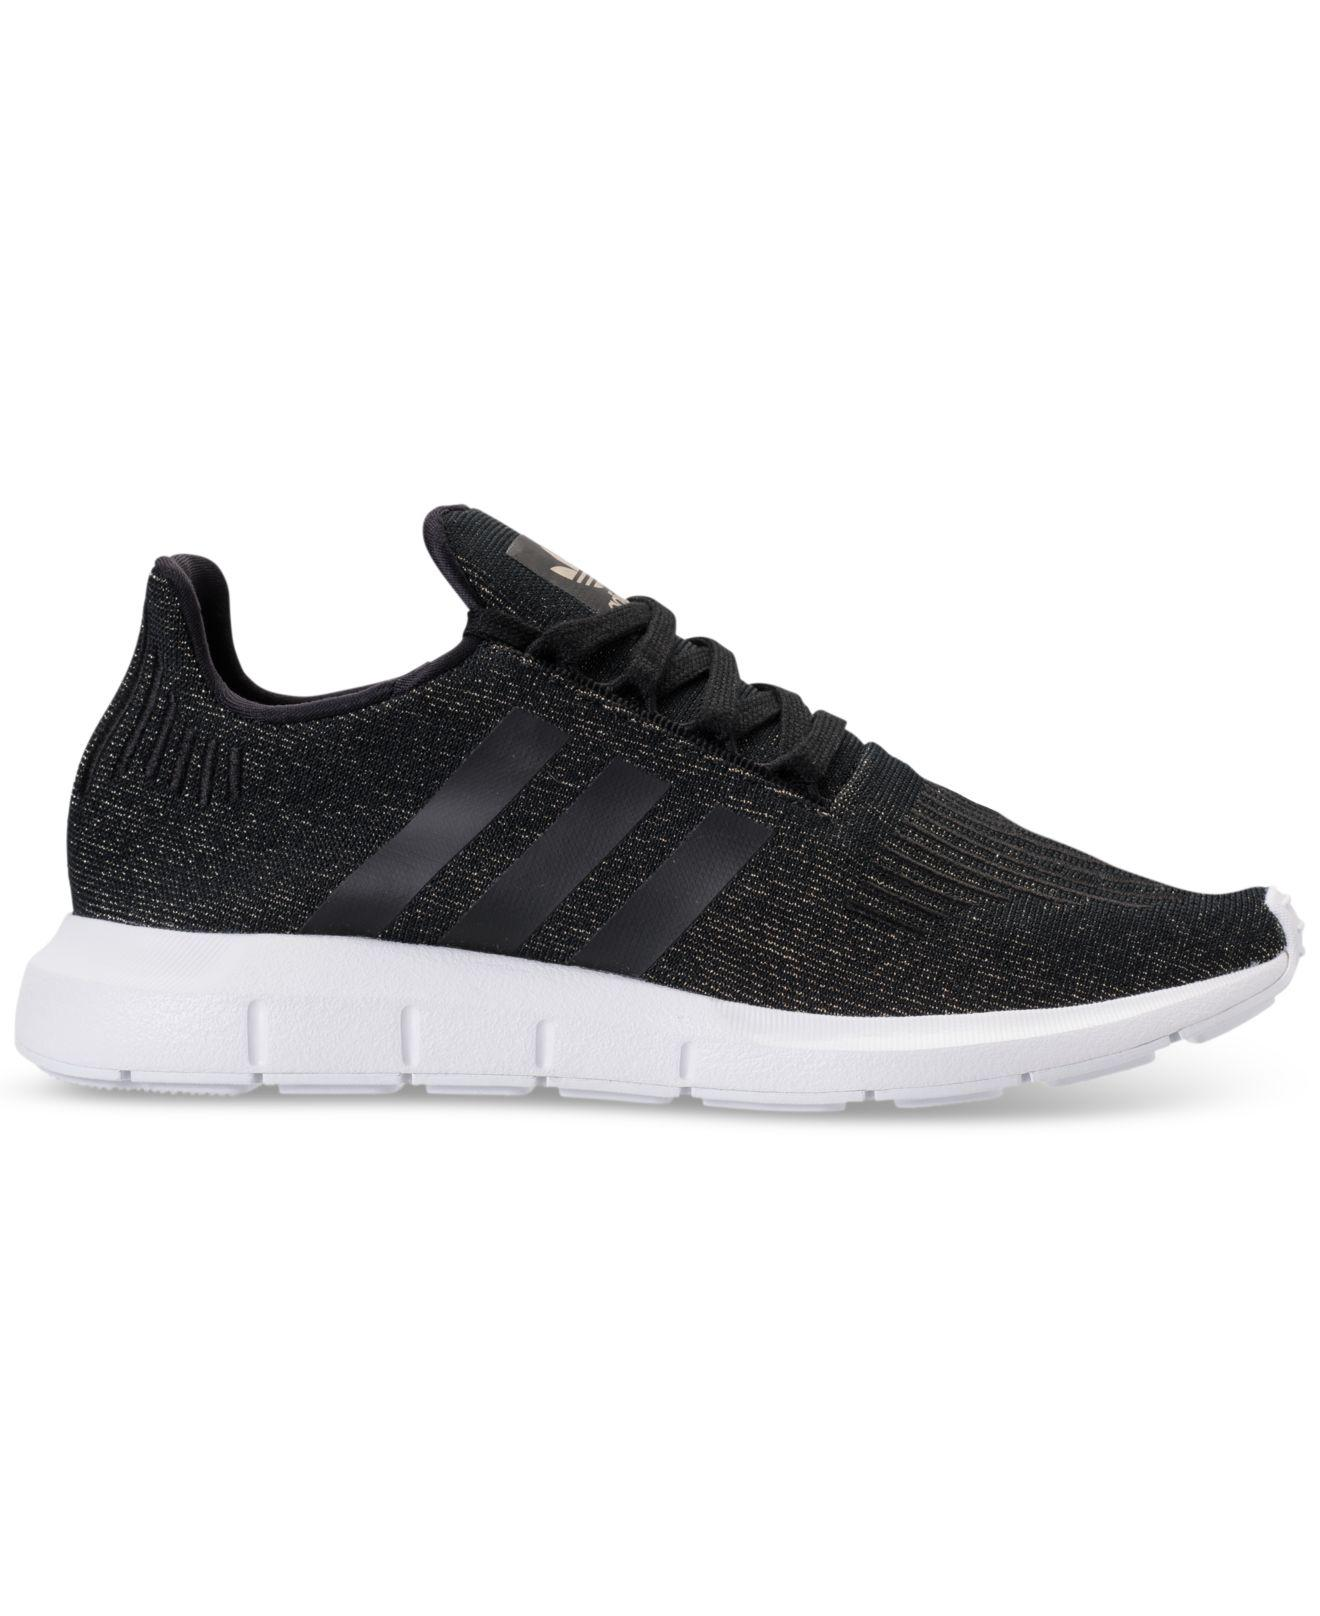 af9abcece Lyst - adidas Women s Swift Run Casual Sneakers From Finish Line in Black